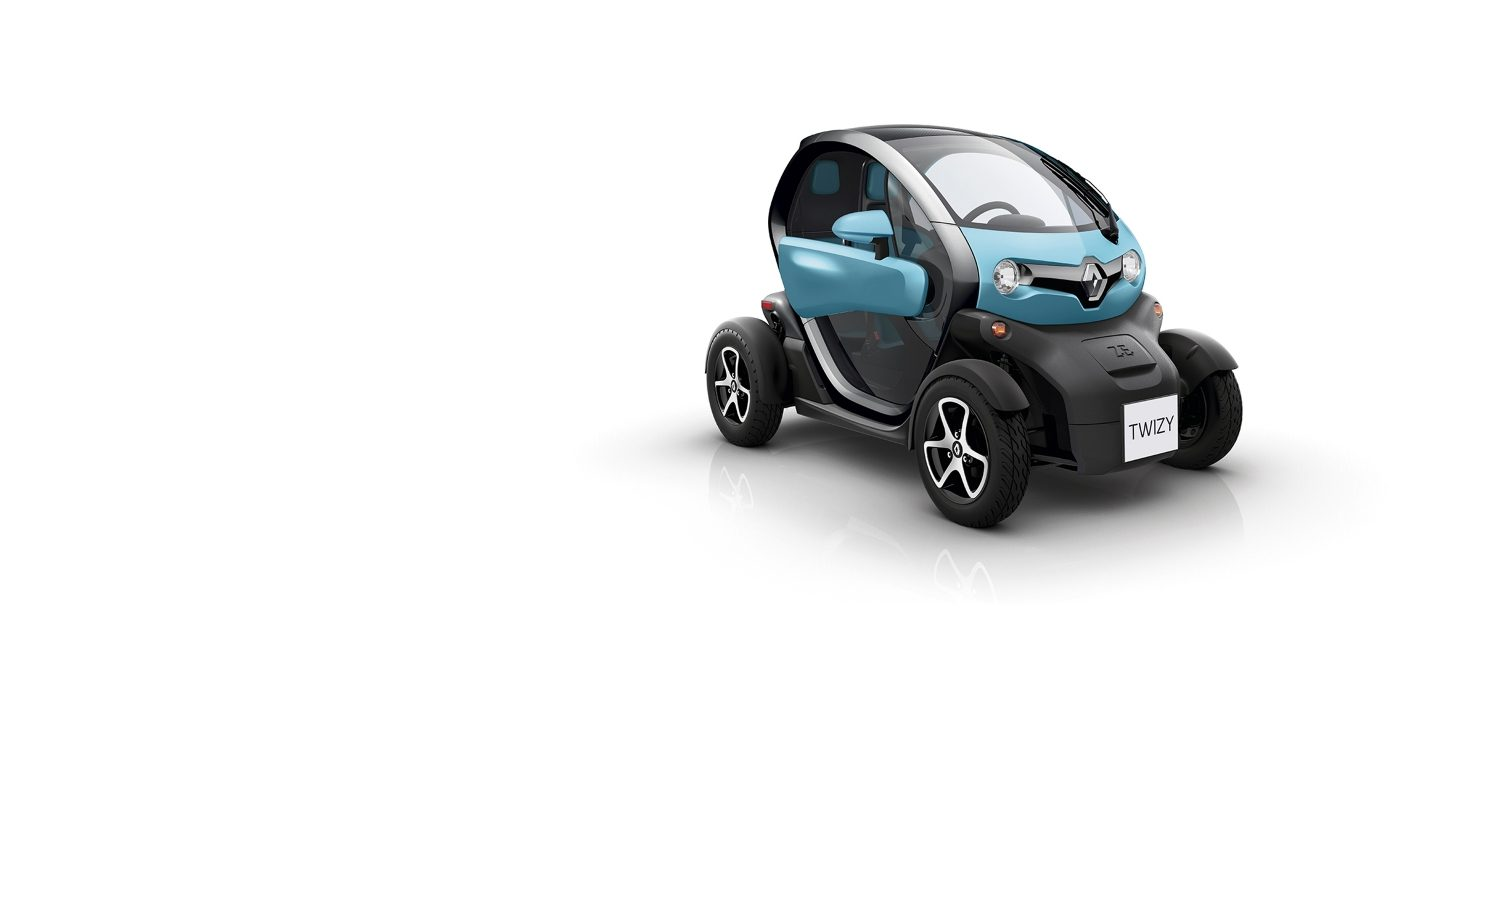 renault-twizy-m09e-ph1-beauty-shots-desktop.jpg.ximg.l_full_m.smart.jpg